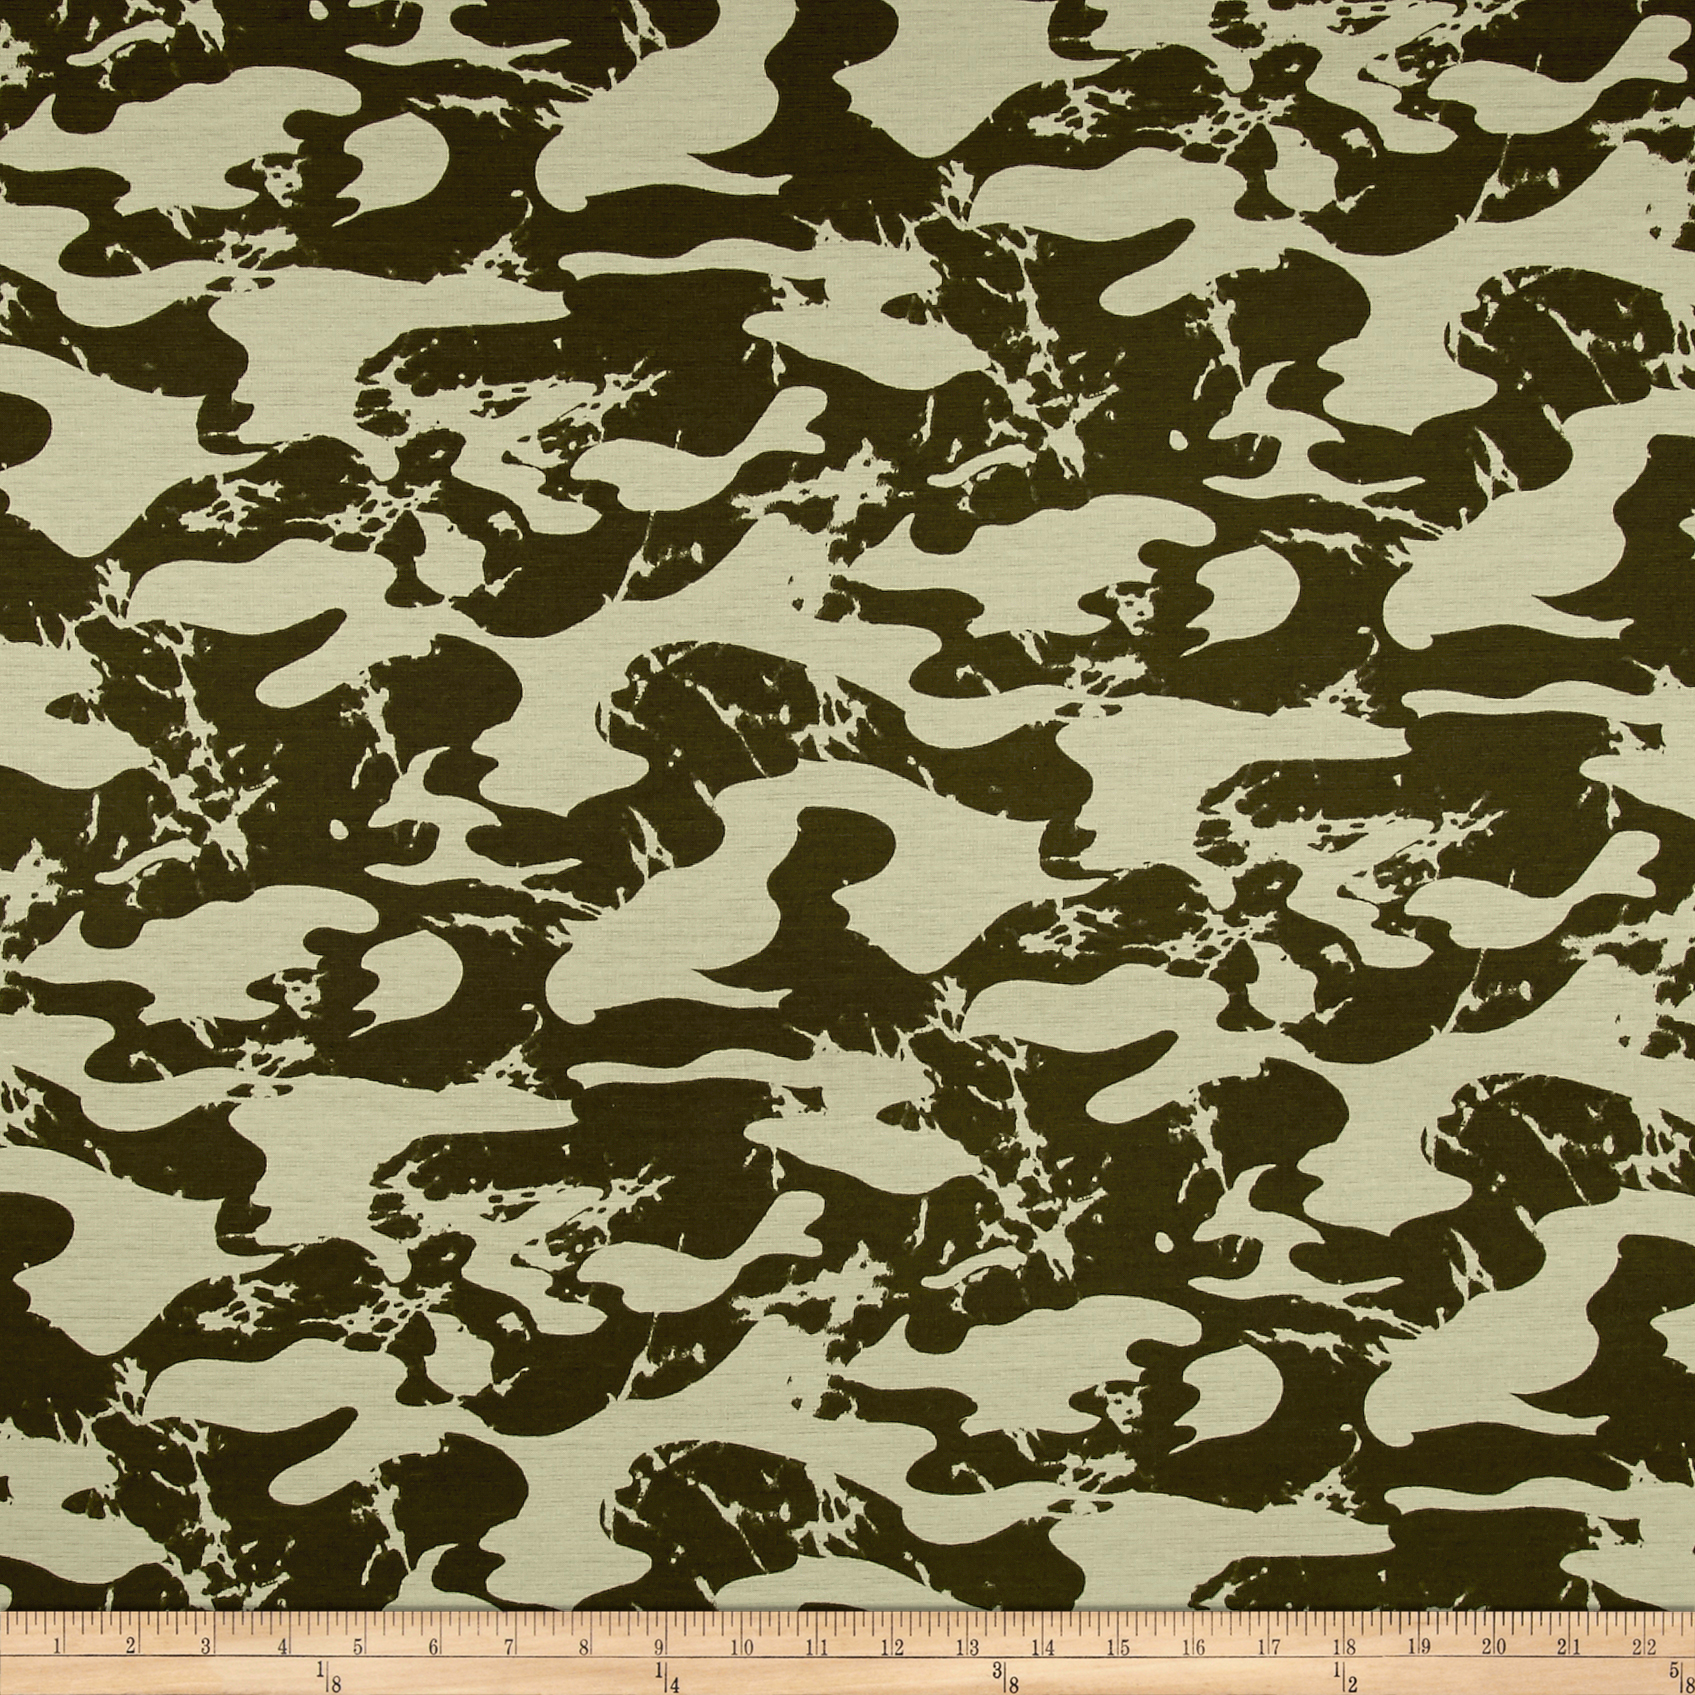 Ponte De Roma Camouflage Green Fabric by Fabric Merchants in USA